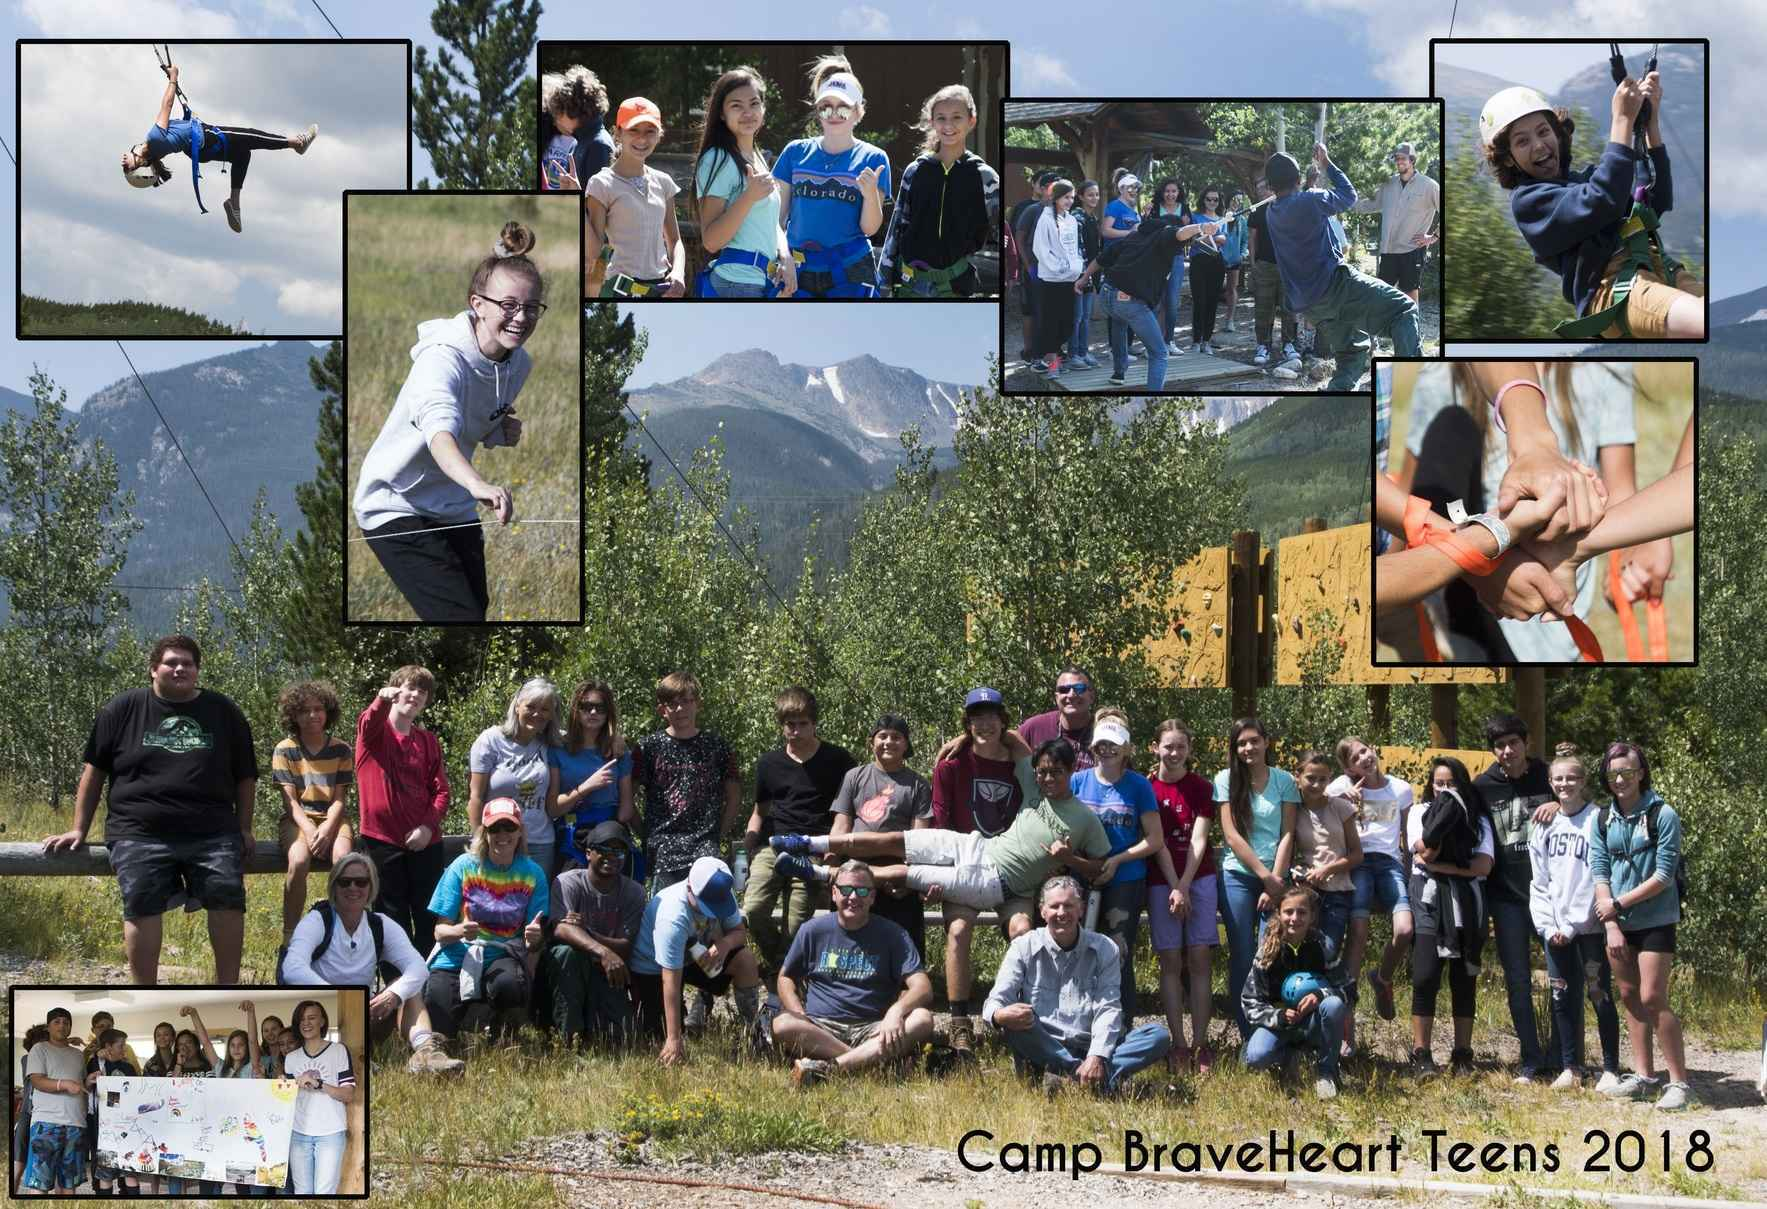 2020 Camp BraveHeart Teens- August 22nd, 2020 image